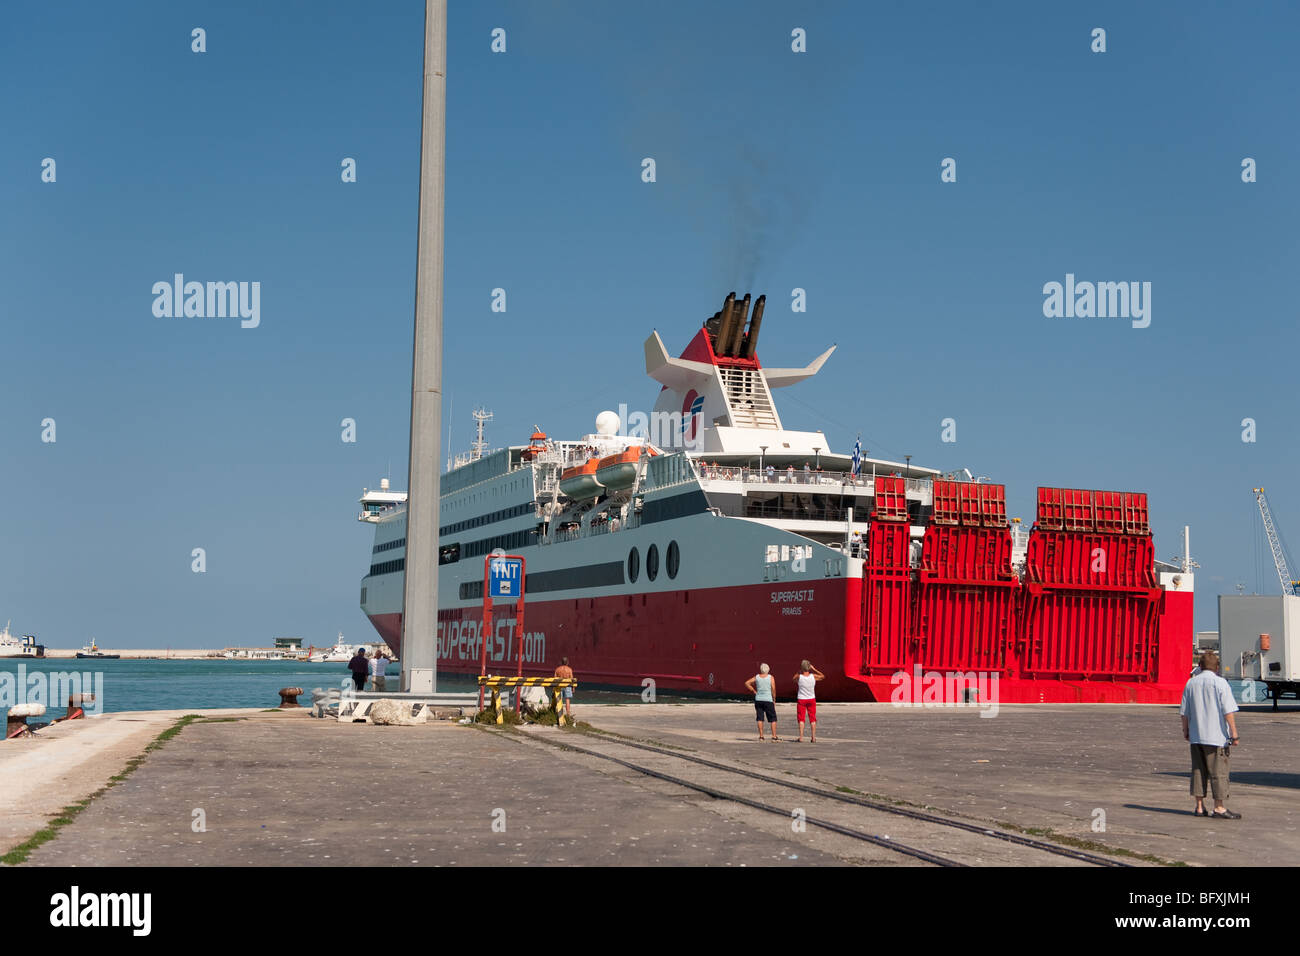 ferry ancona stockfotos ferry ancona bilder alamy. Black Bedroom Furniture Sets. Home Design Ideas